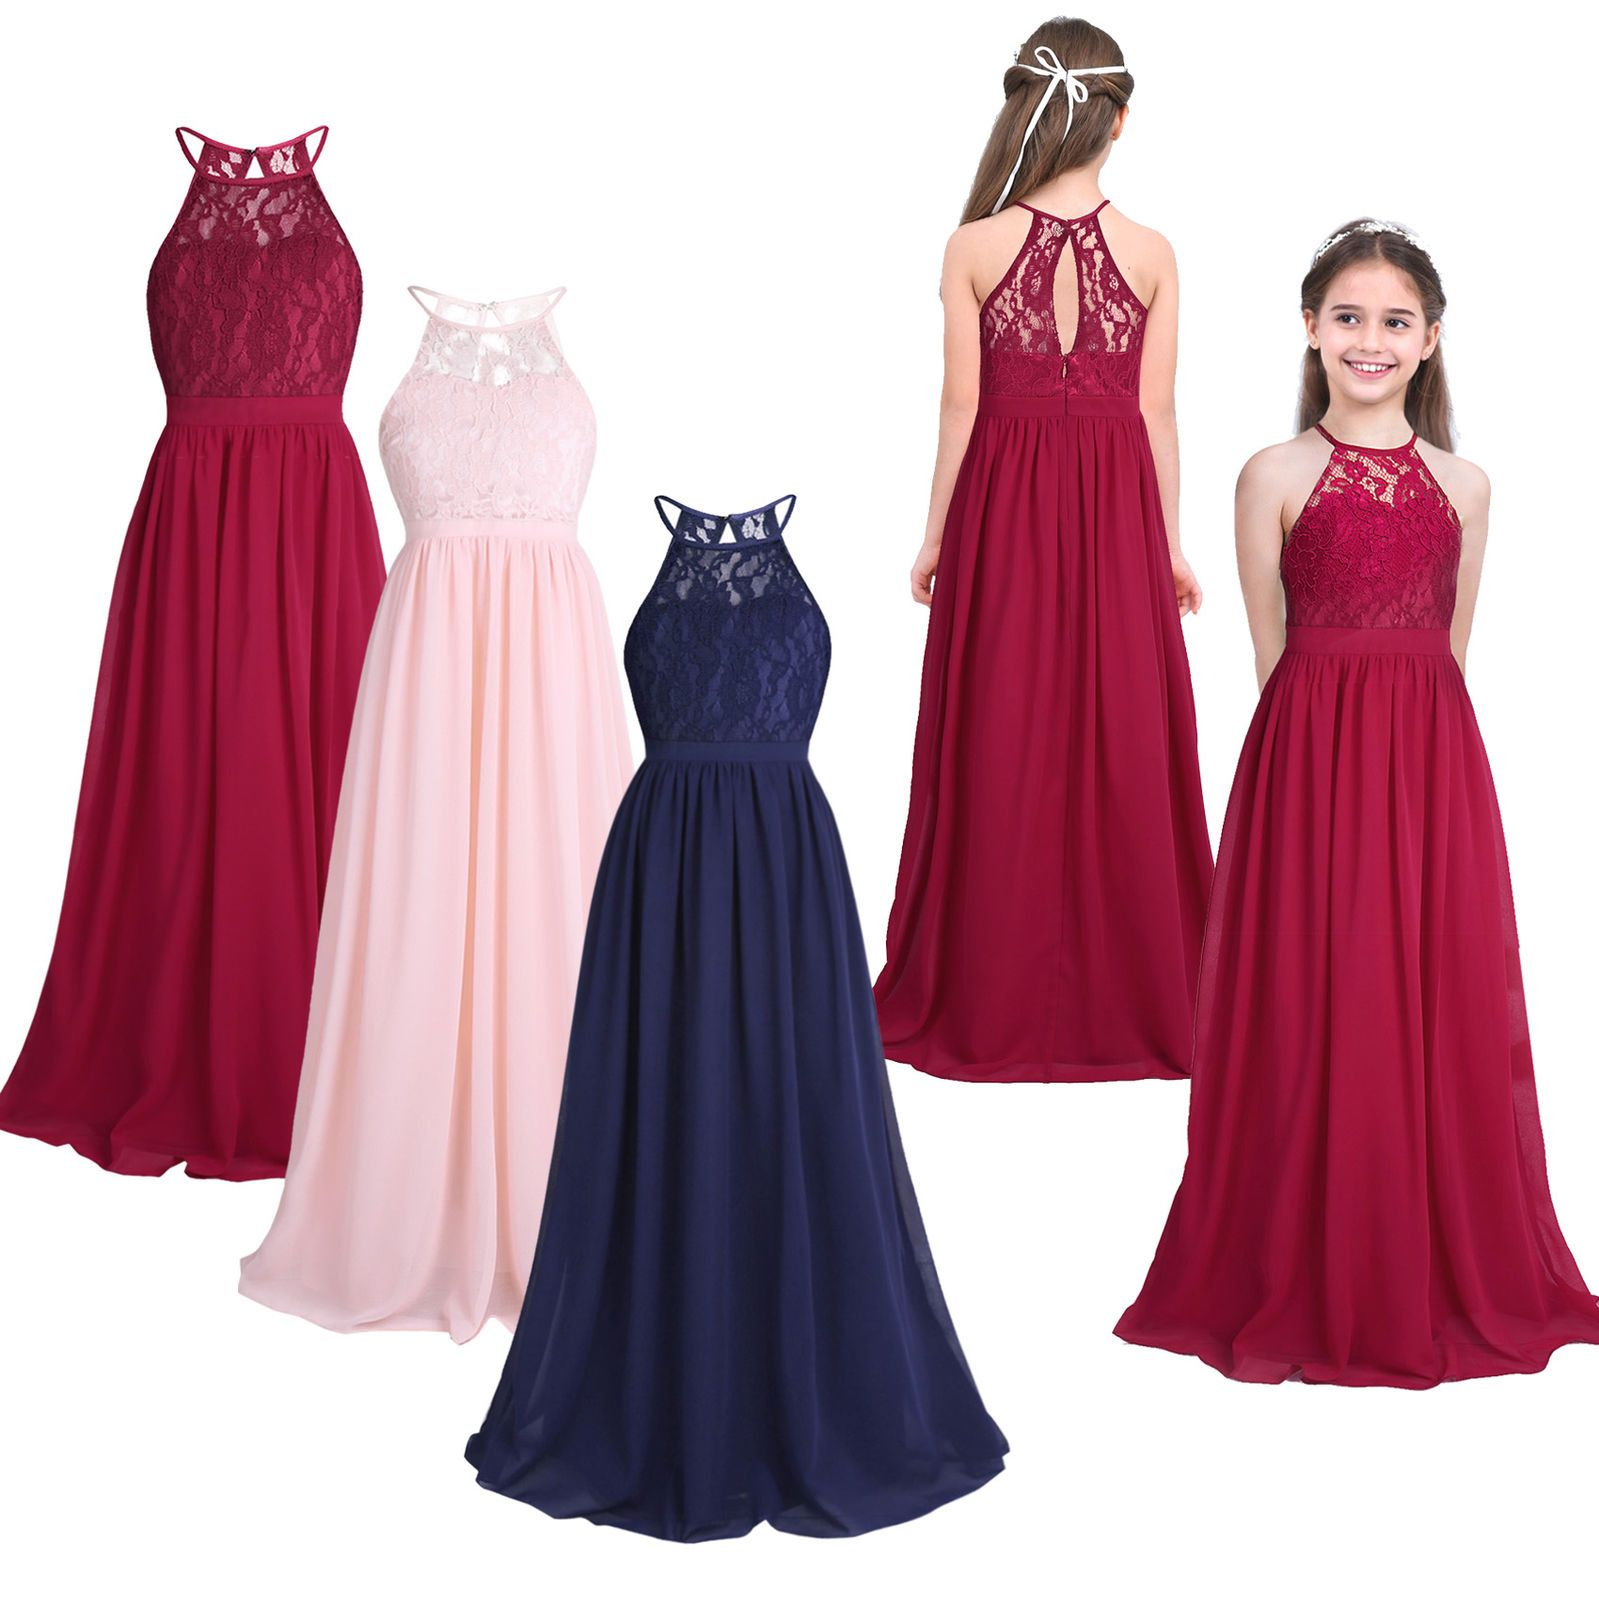 Kids girls communion party princess occasion gown prom wedding